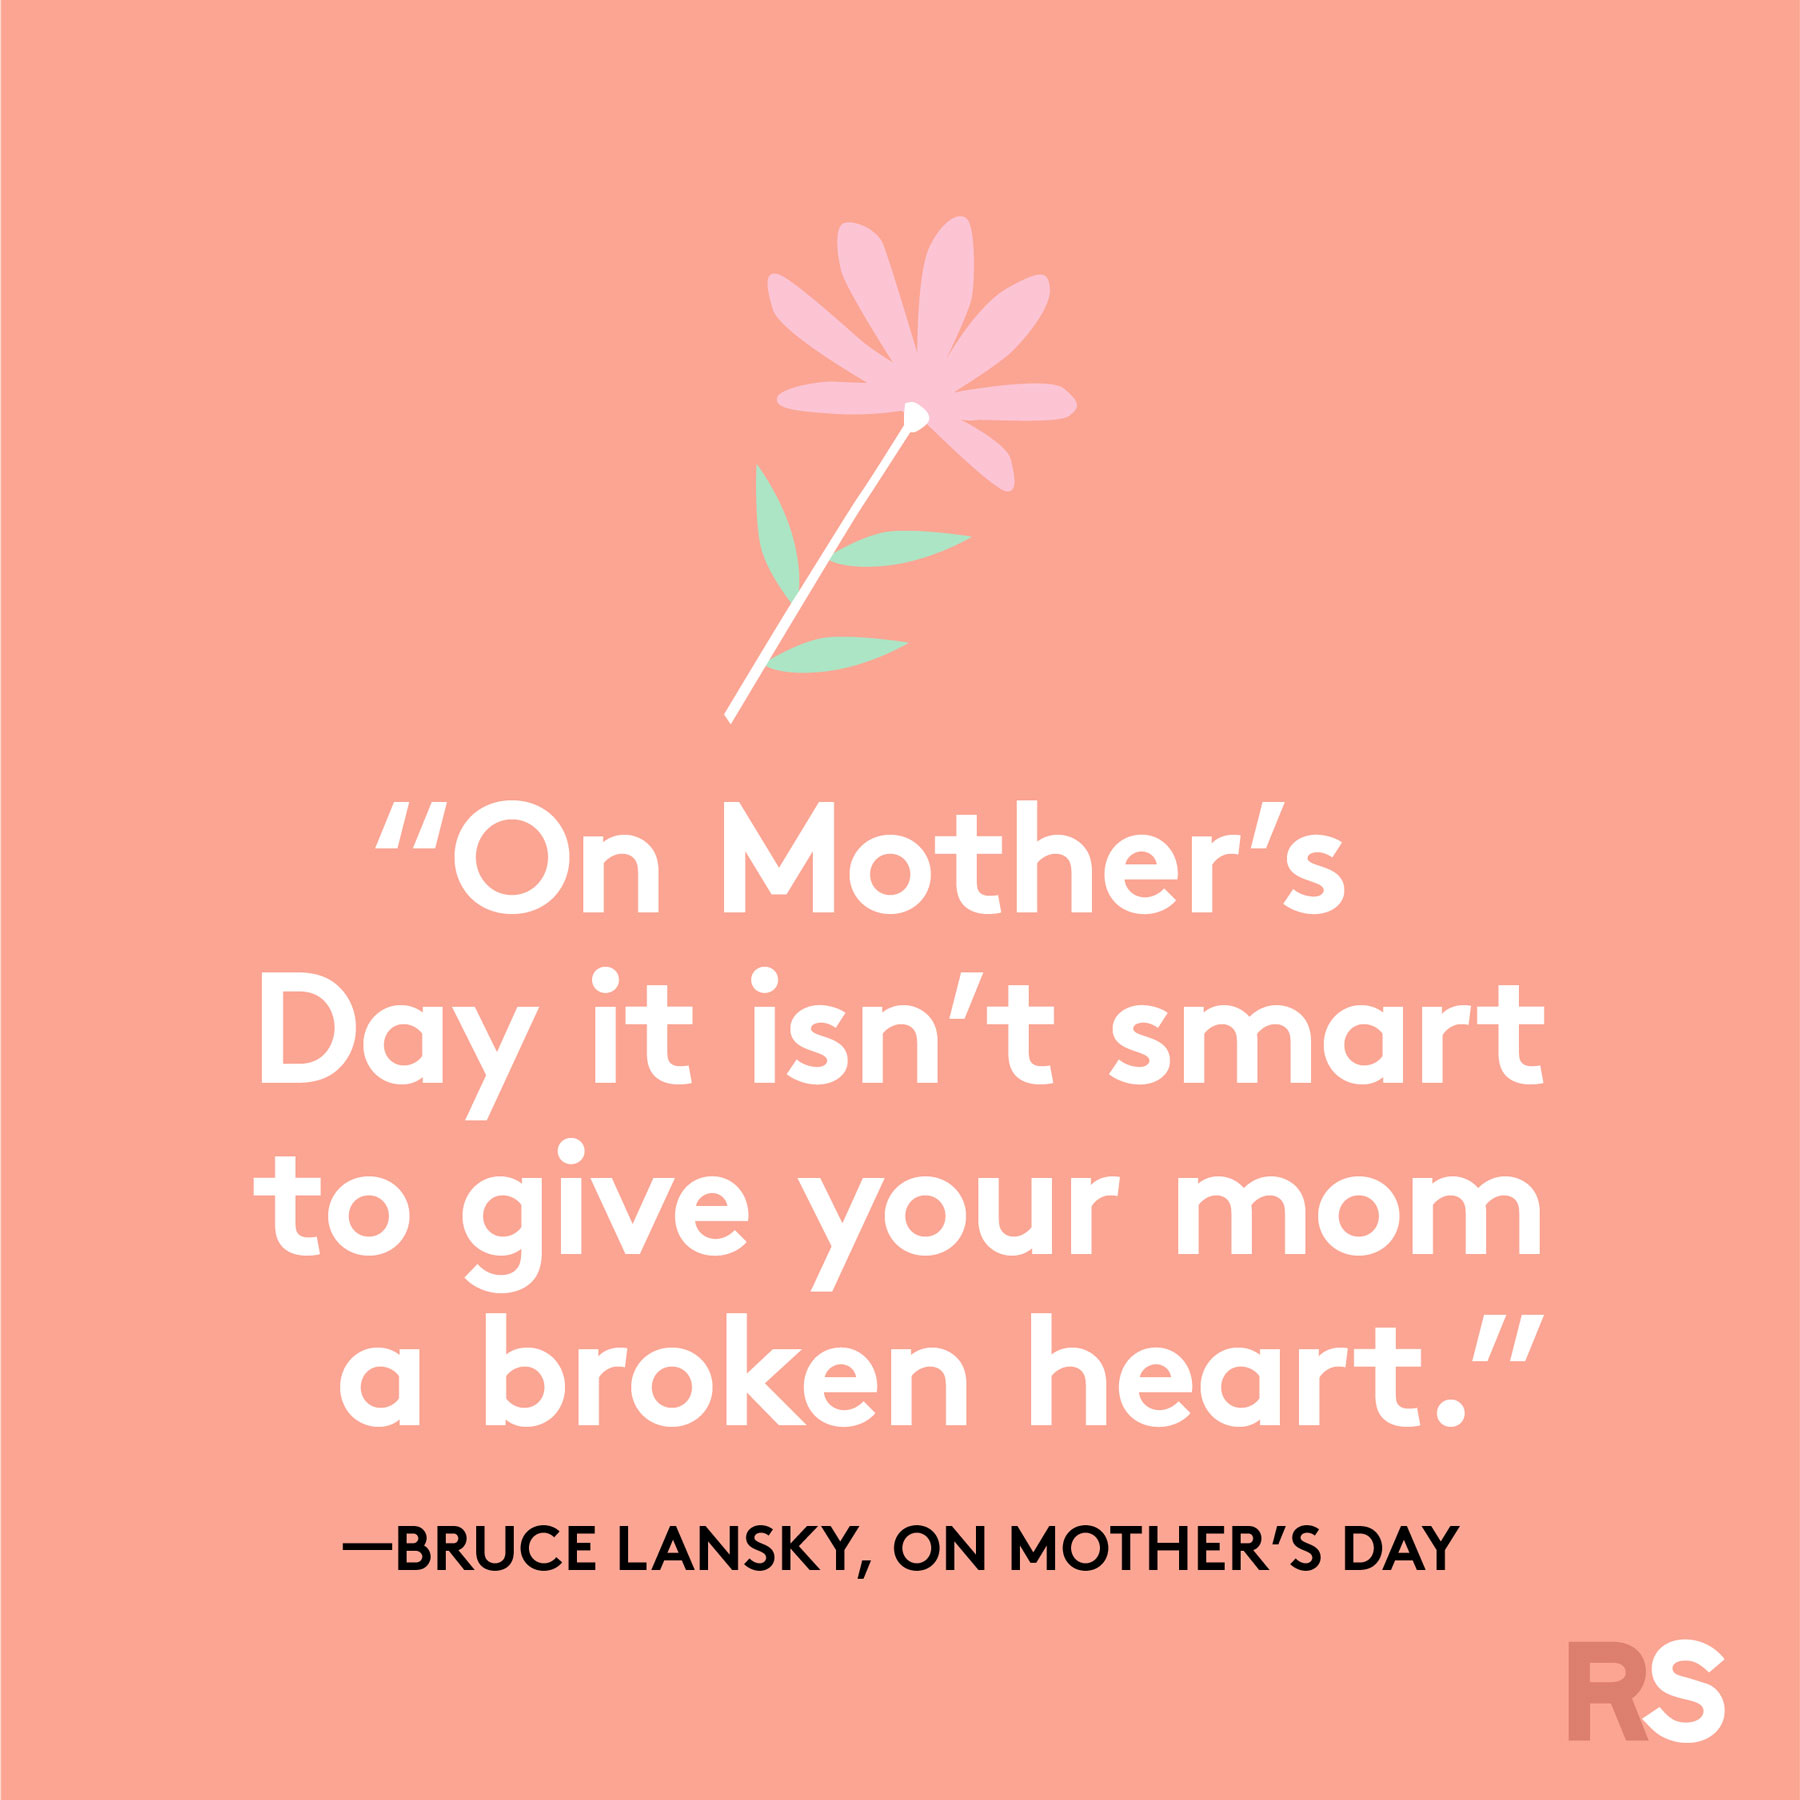 Mother's Day quotes and sayings - quote by Bruce Lansky